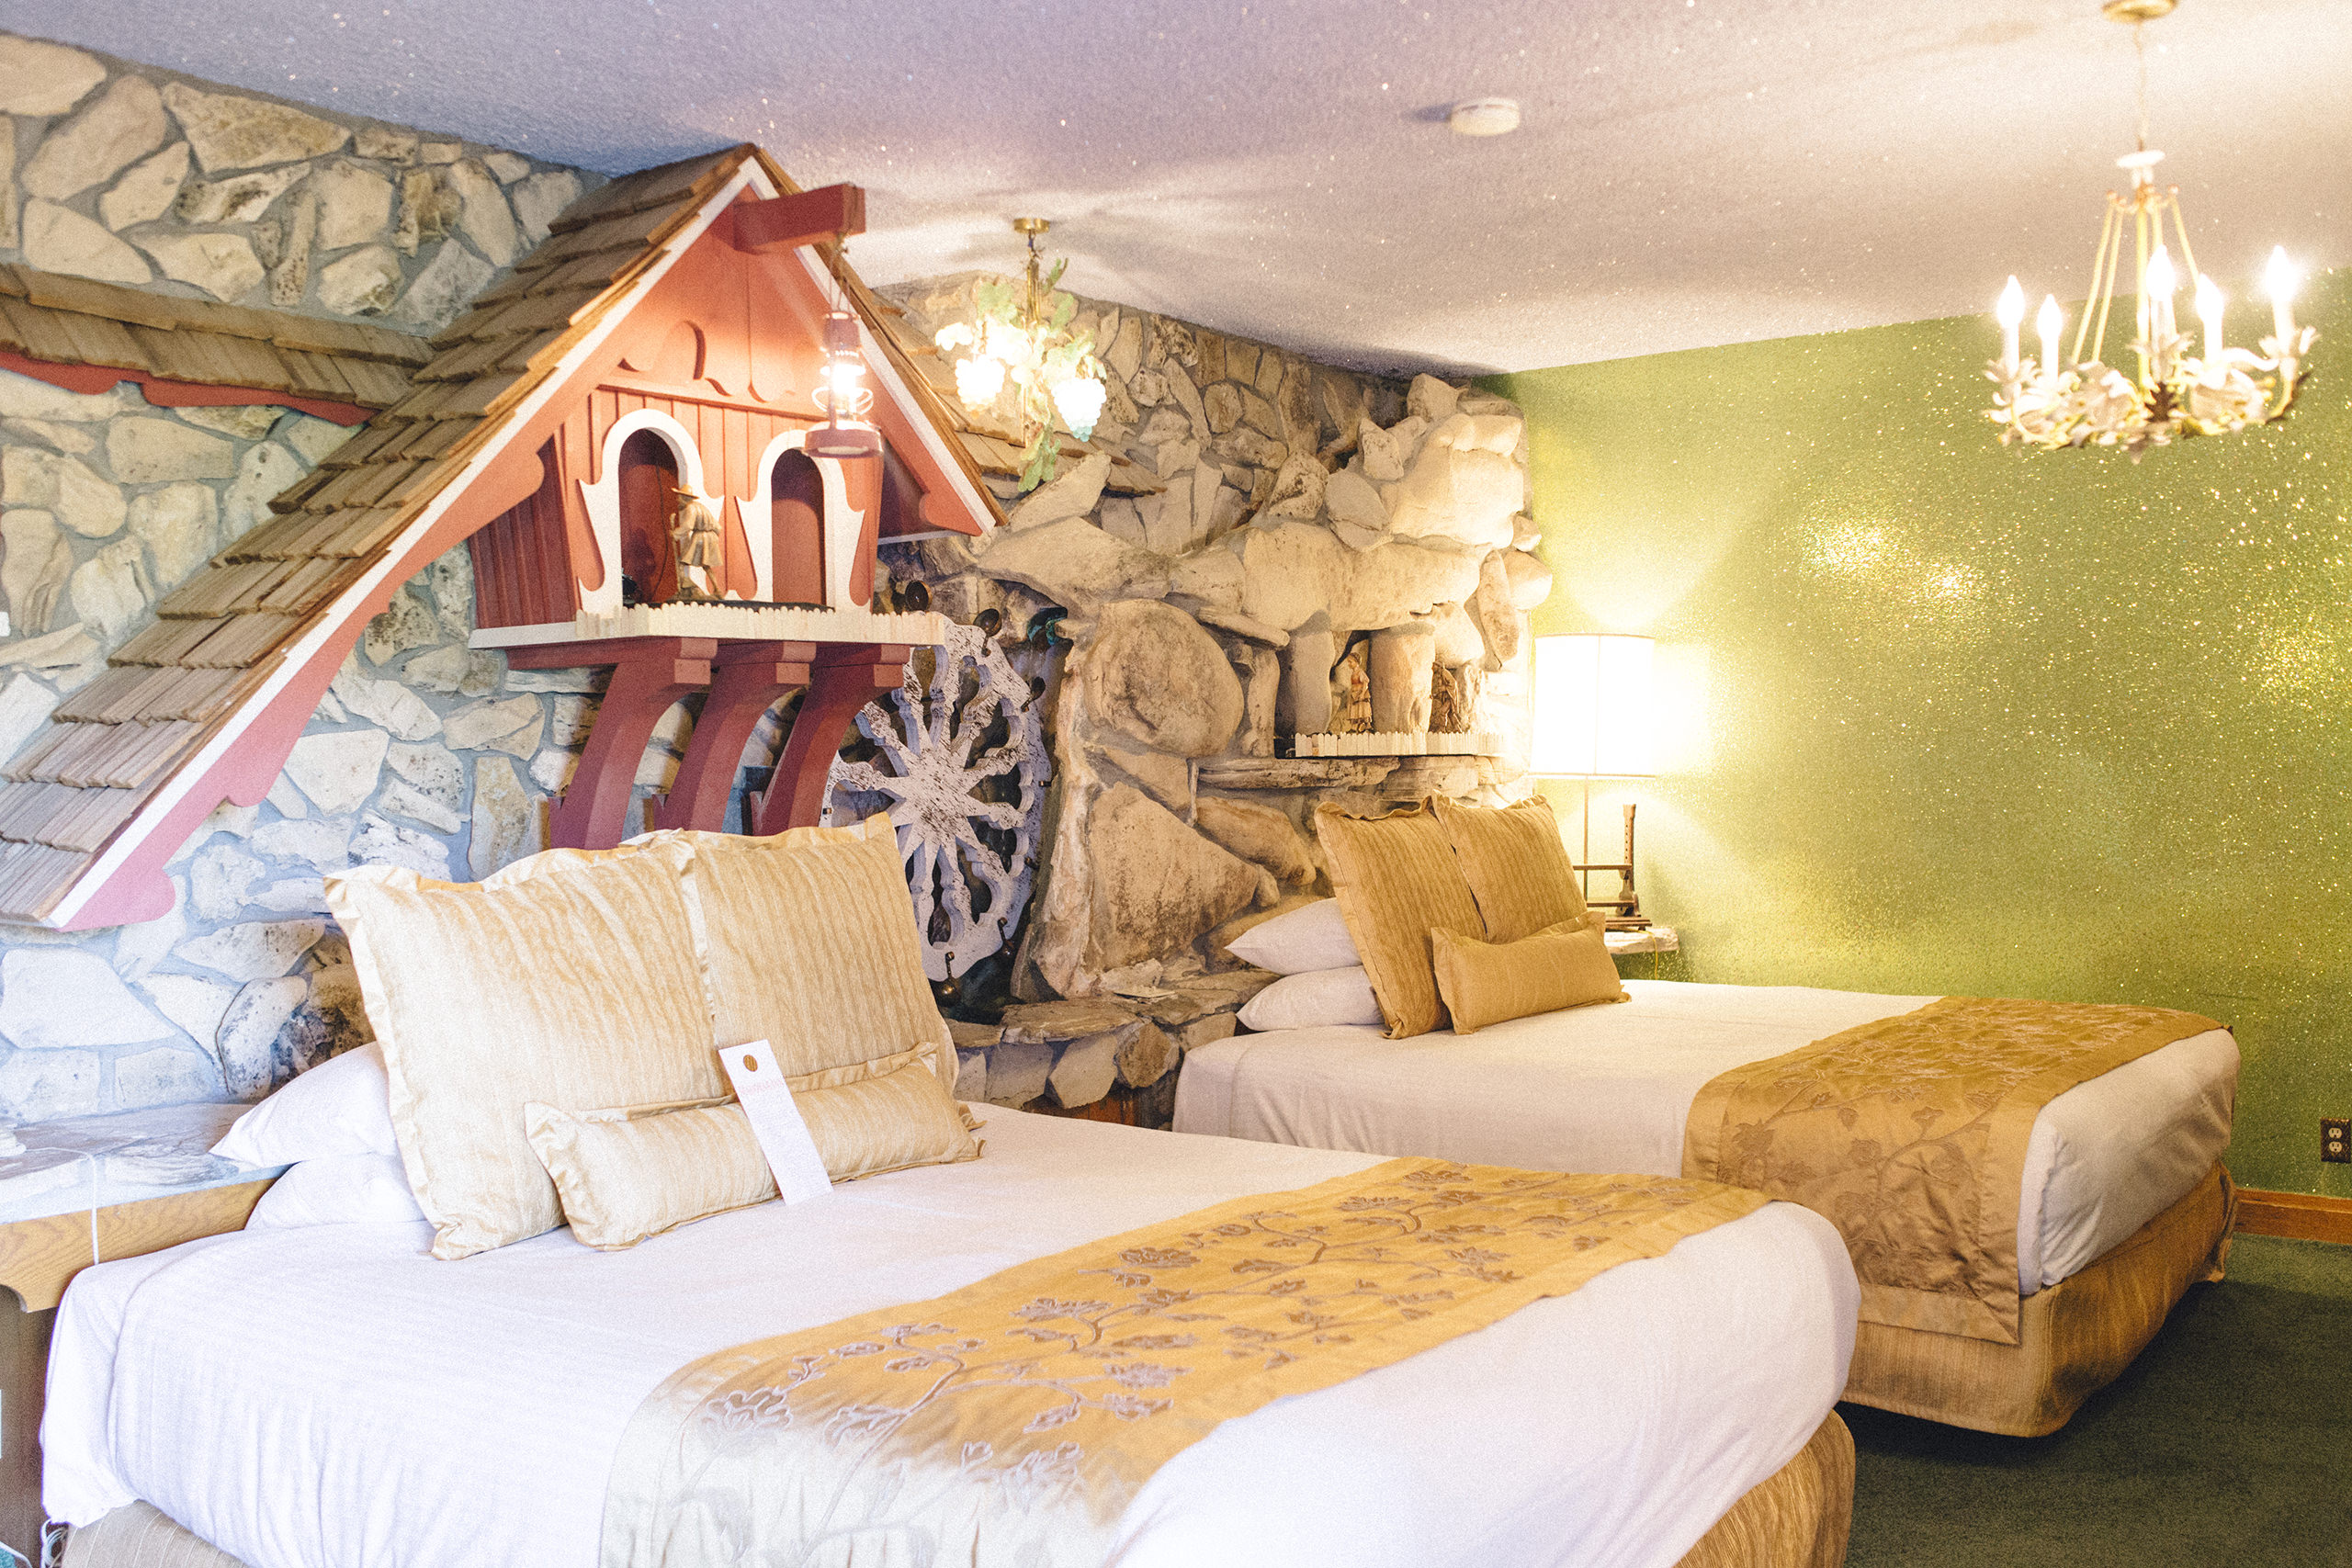 Classfare – The Madonna Inn